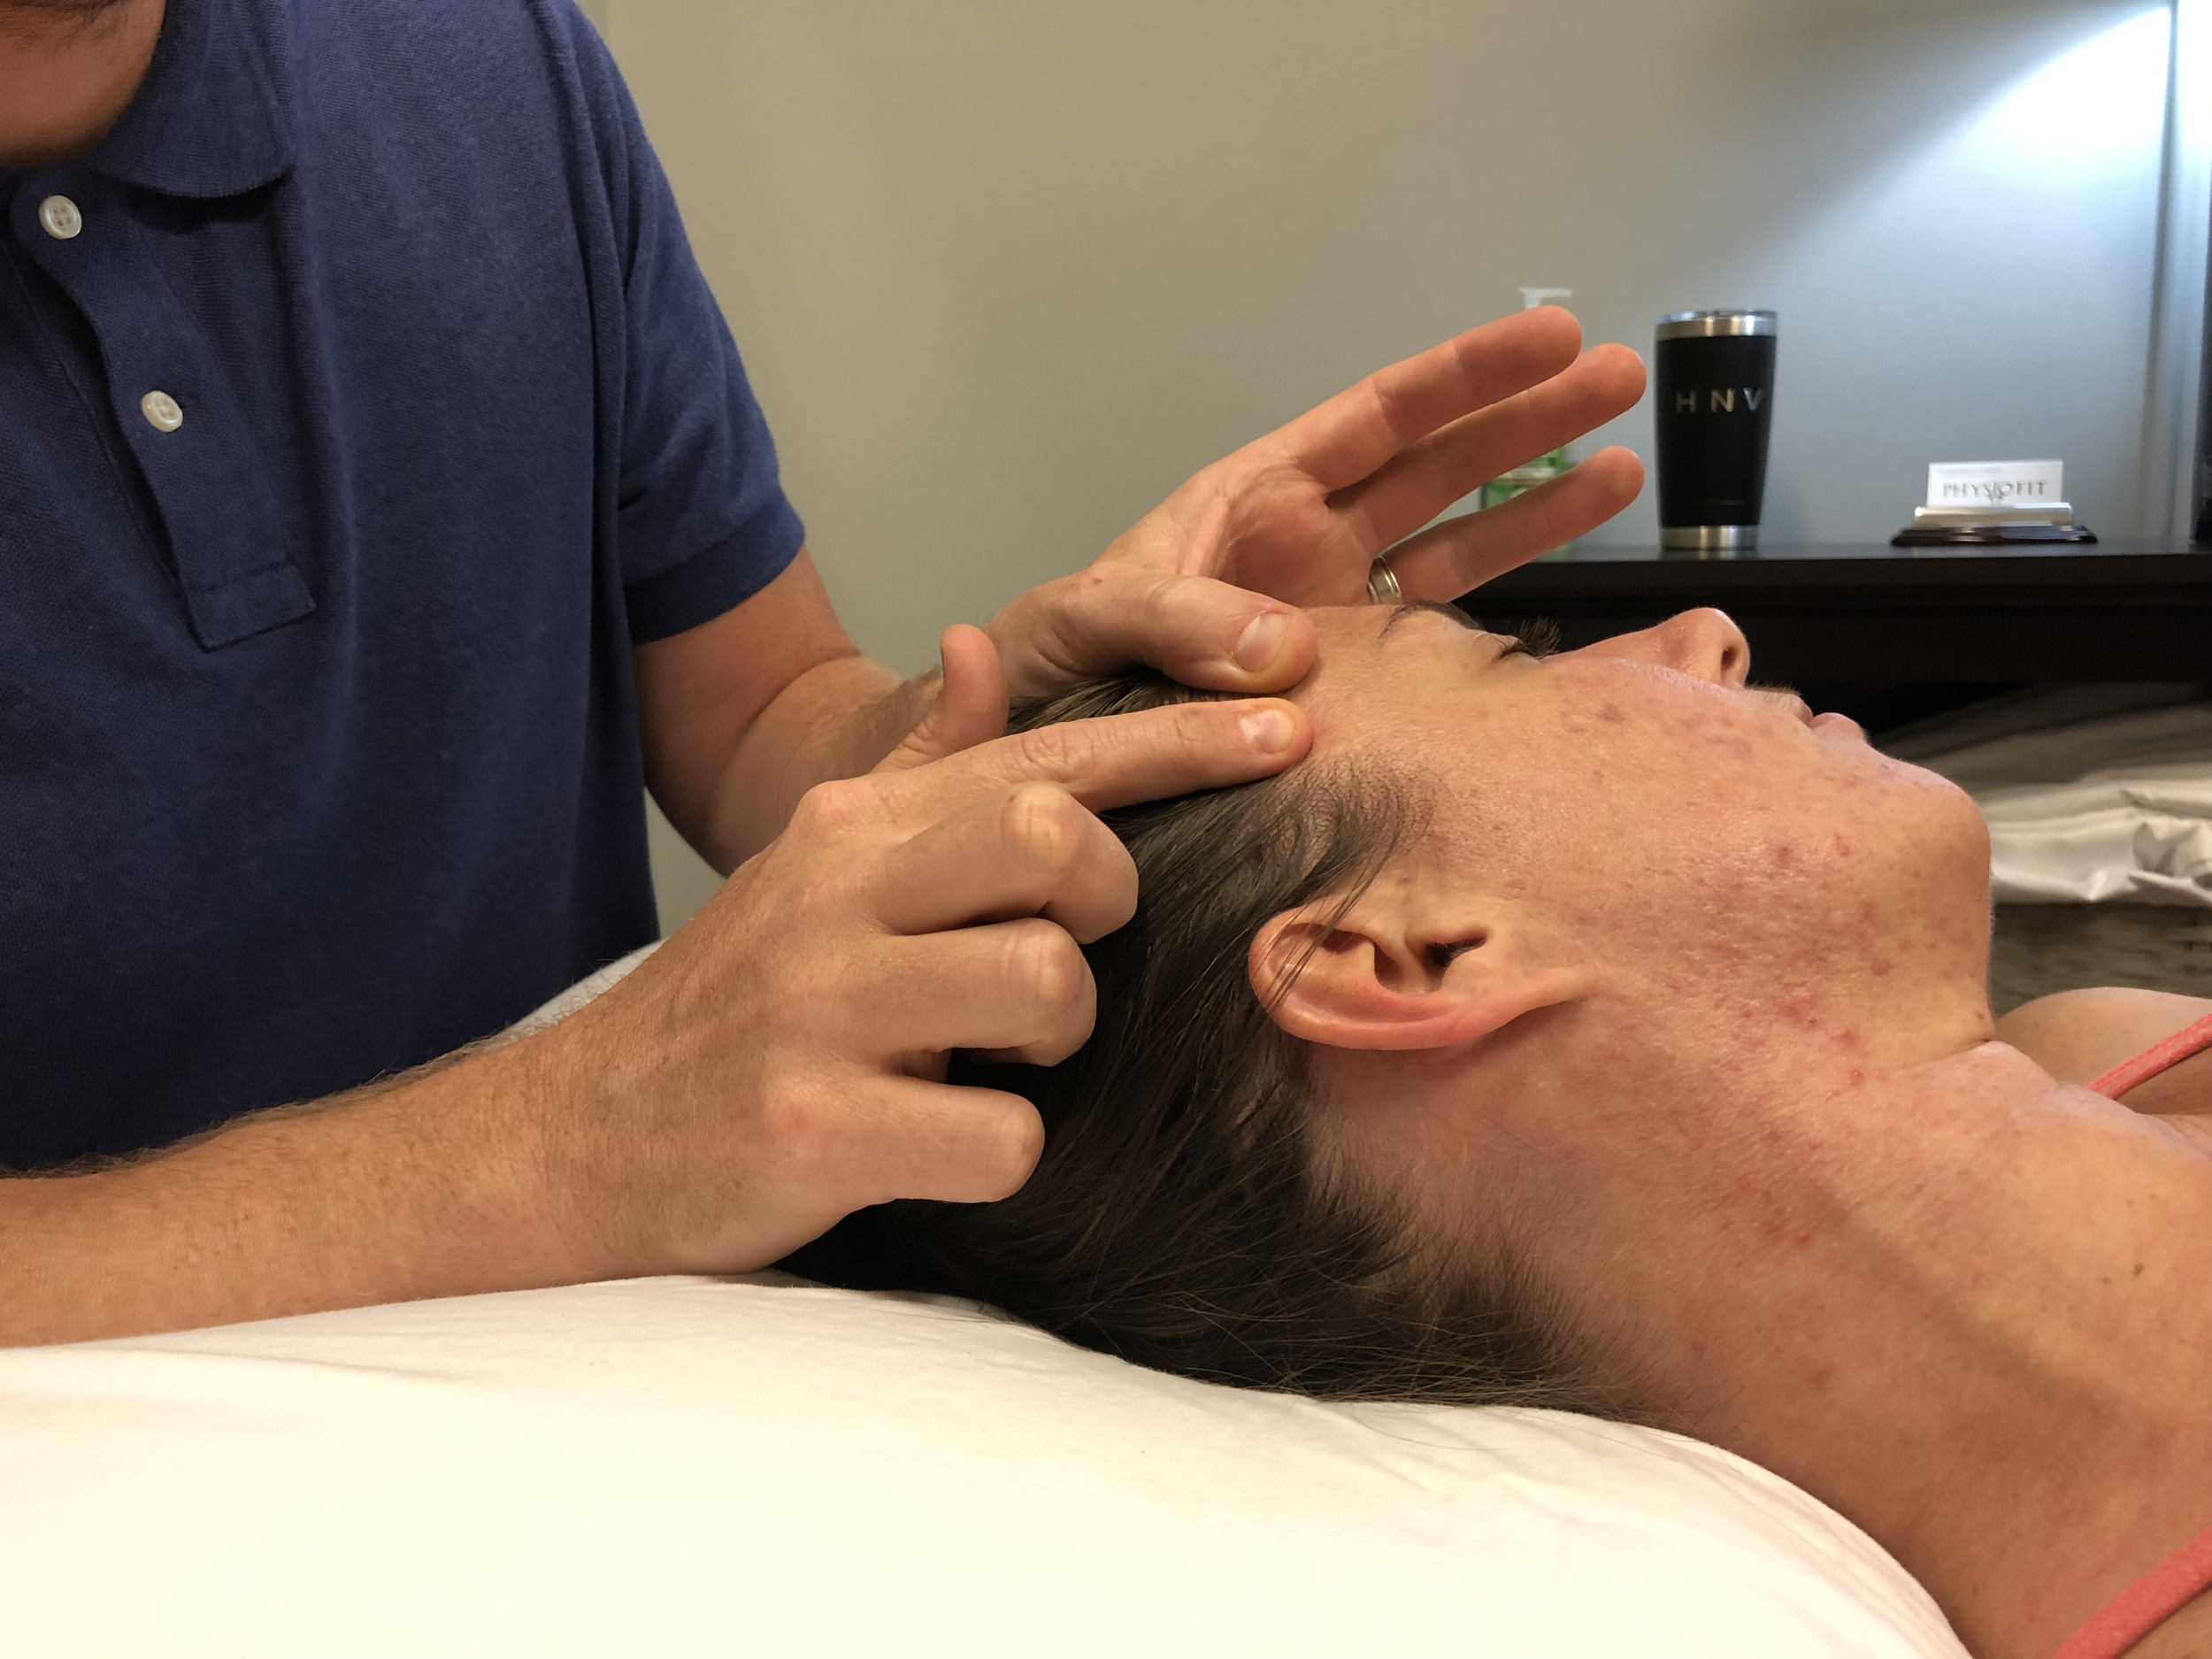 TMJ Treatment at PhysioFit of North Carolina in Wake Forest, NC